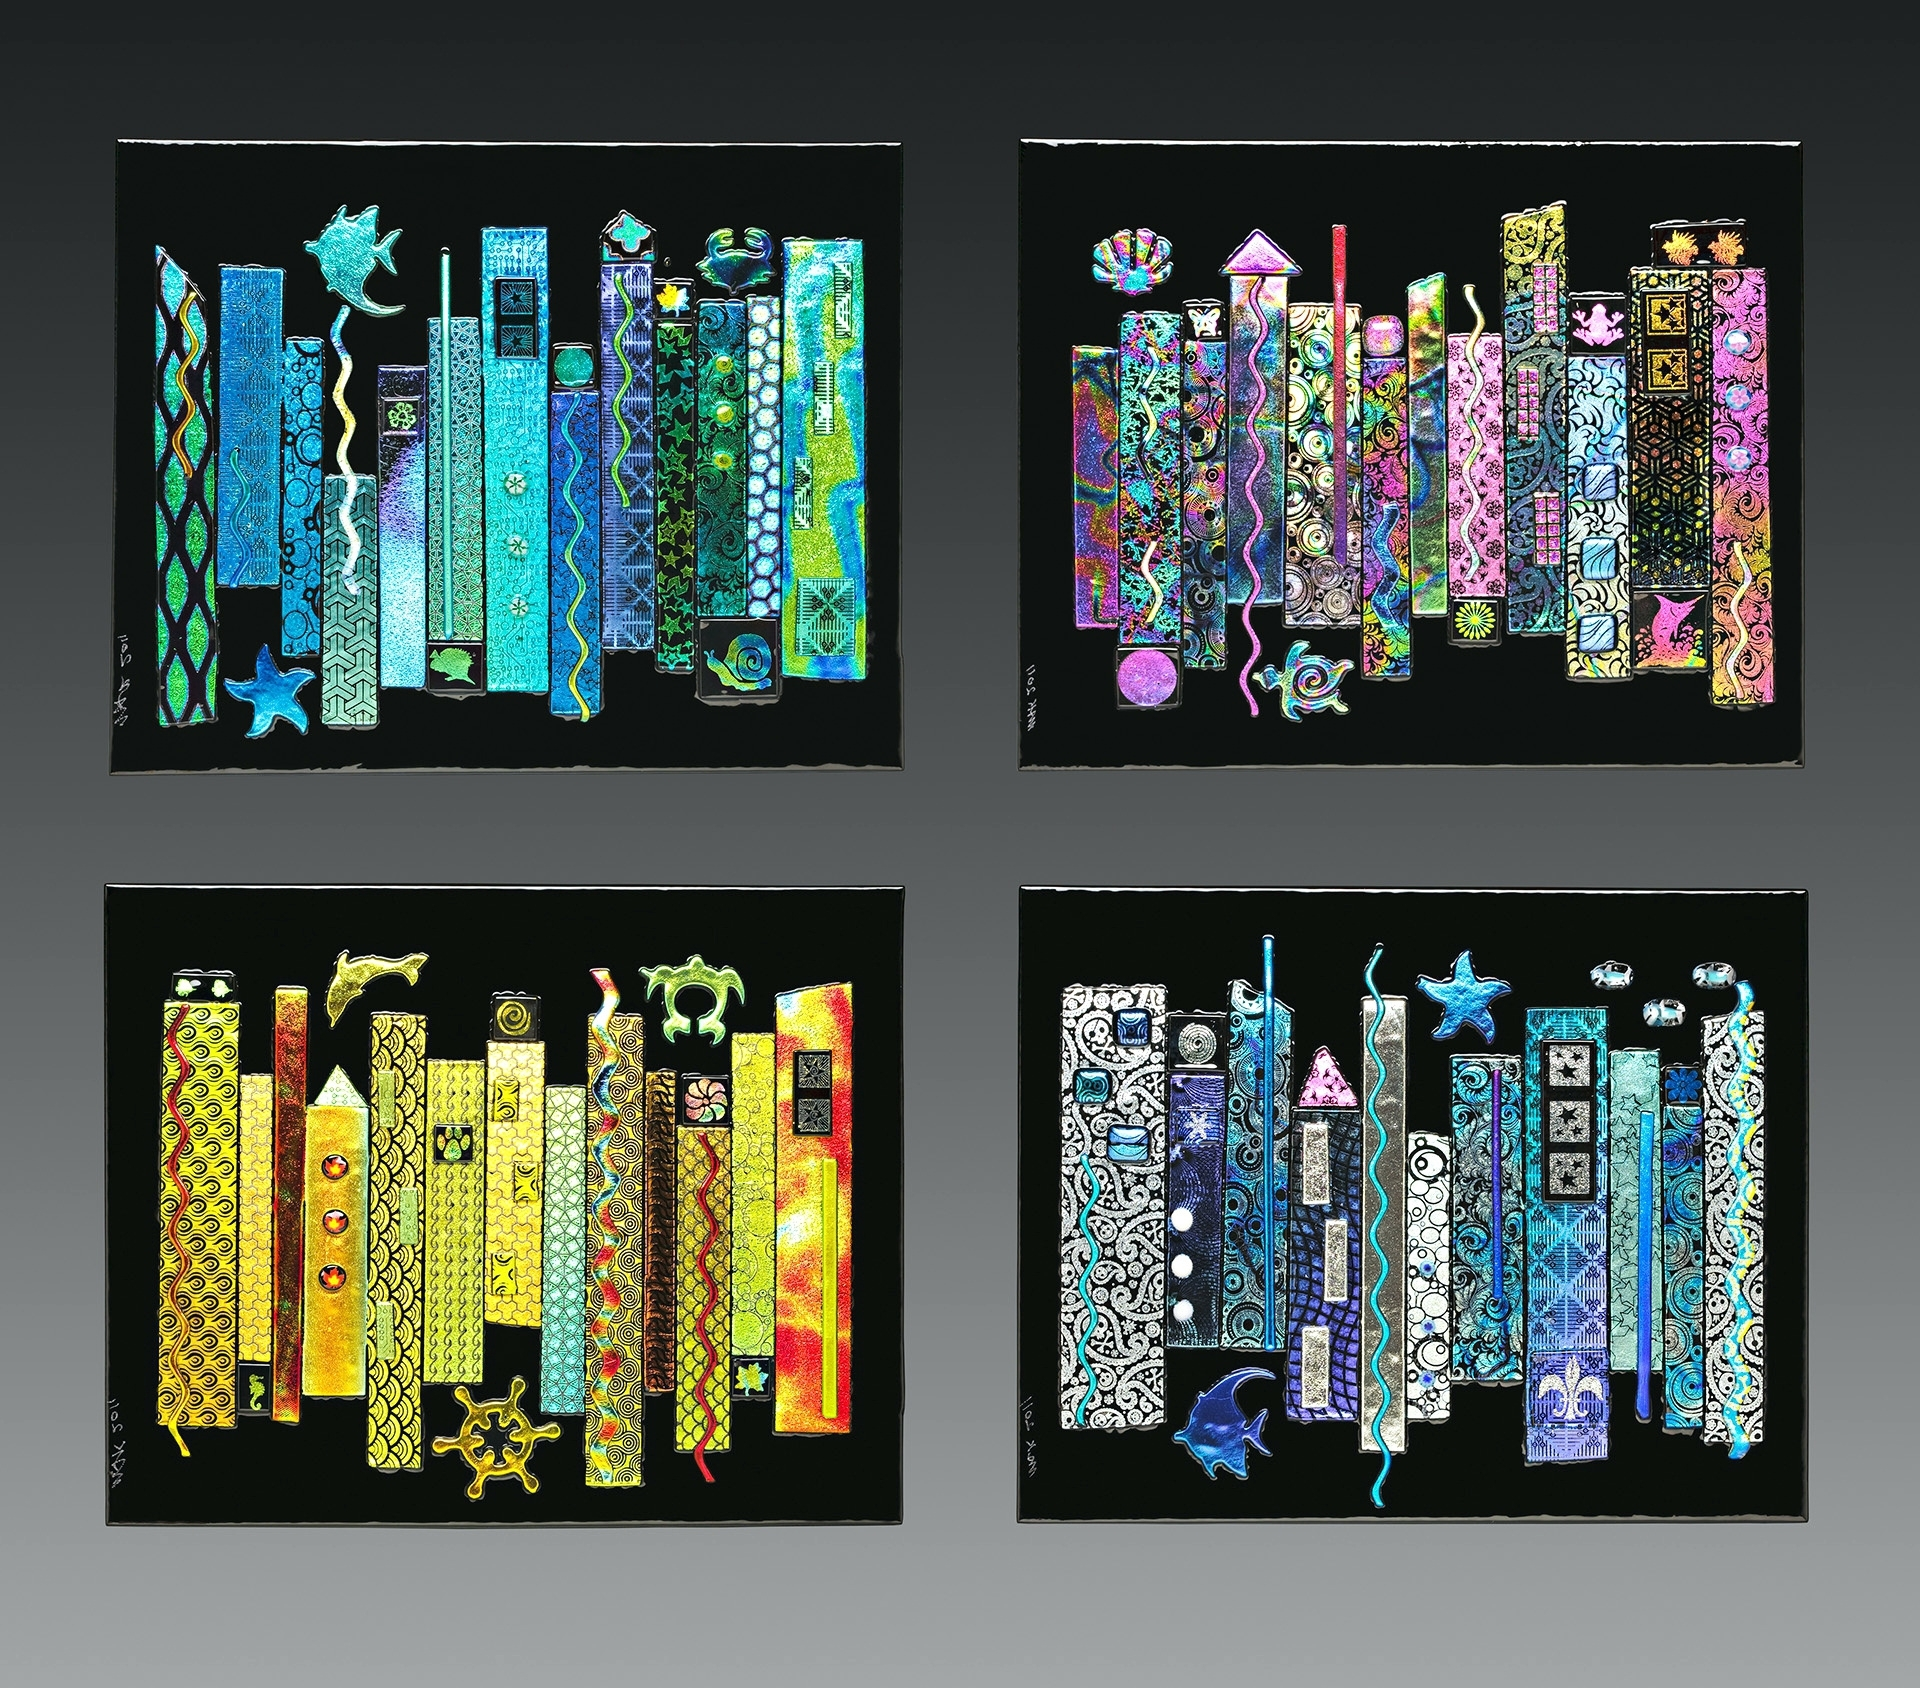 Wall Arts ~ Fused Glass Wall Artwork Blown Glass Wall Art Decor With Fashionable Fused Glass Wall Art (View 15 of 15)